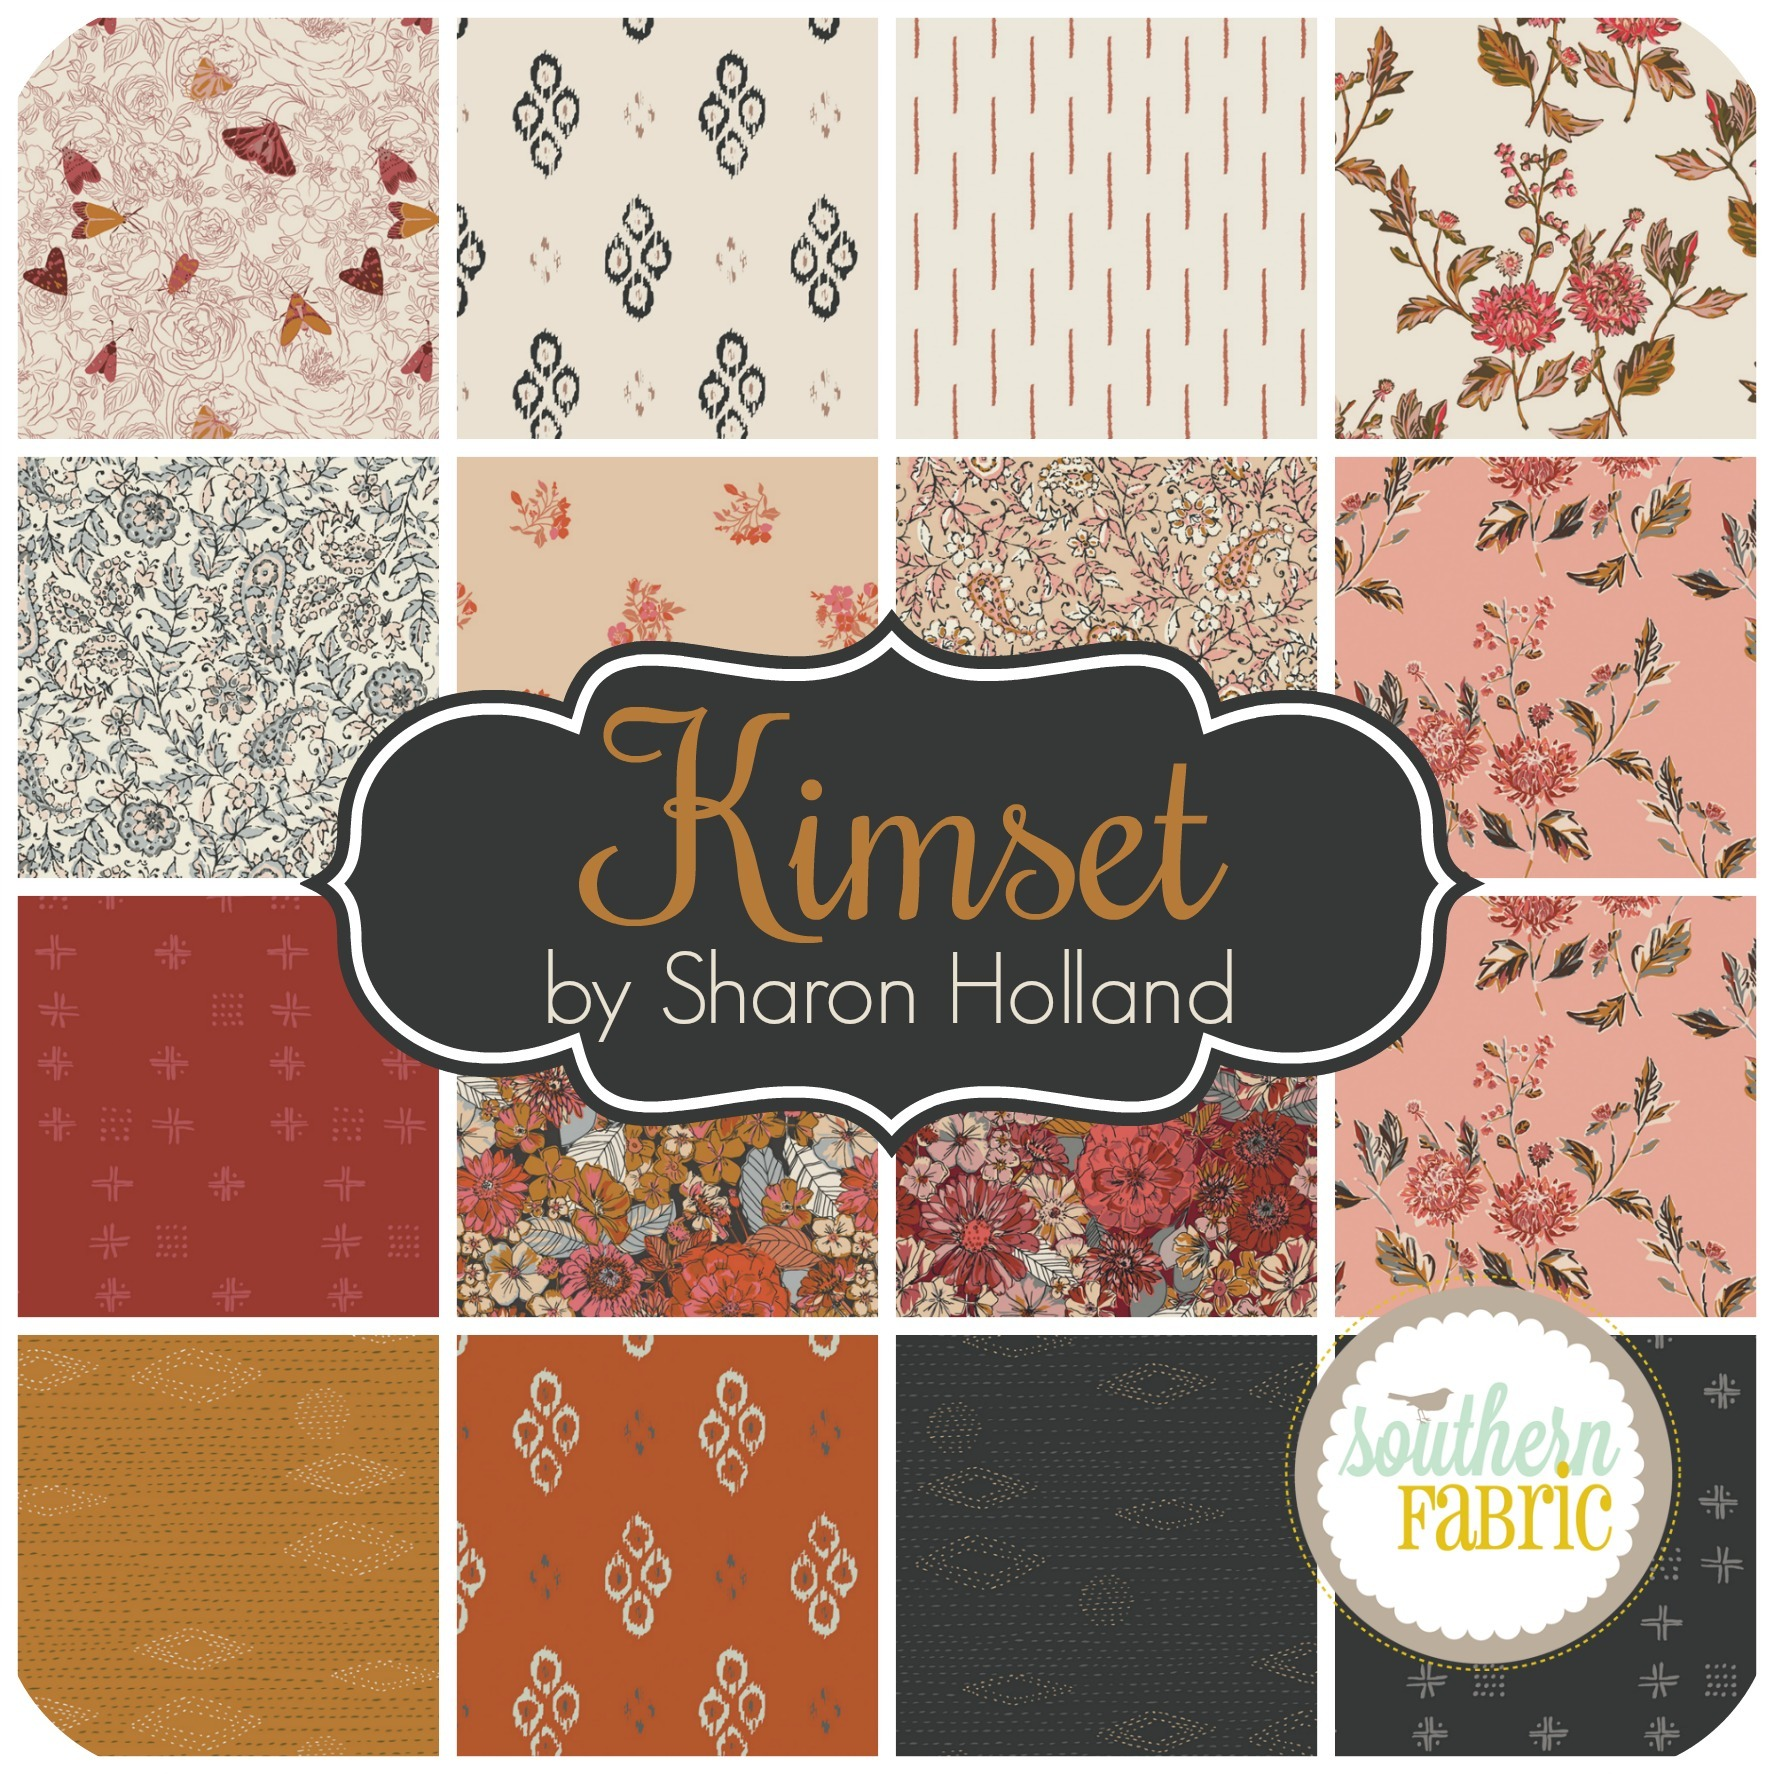 Kismet by Sharon Holland